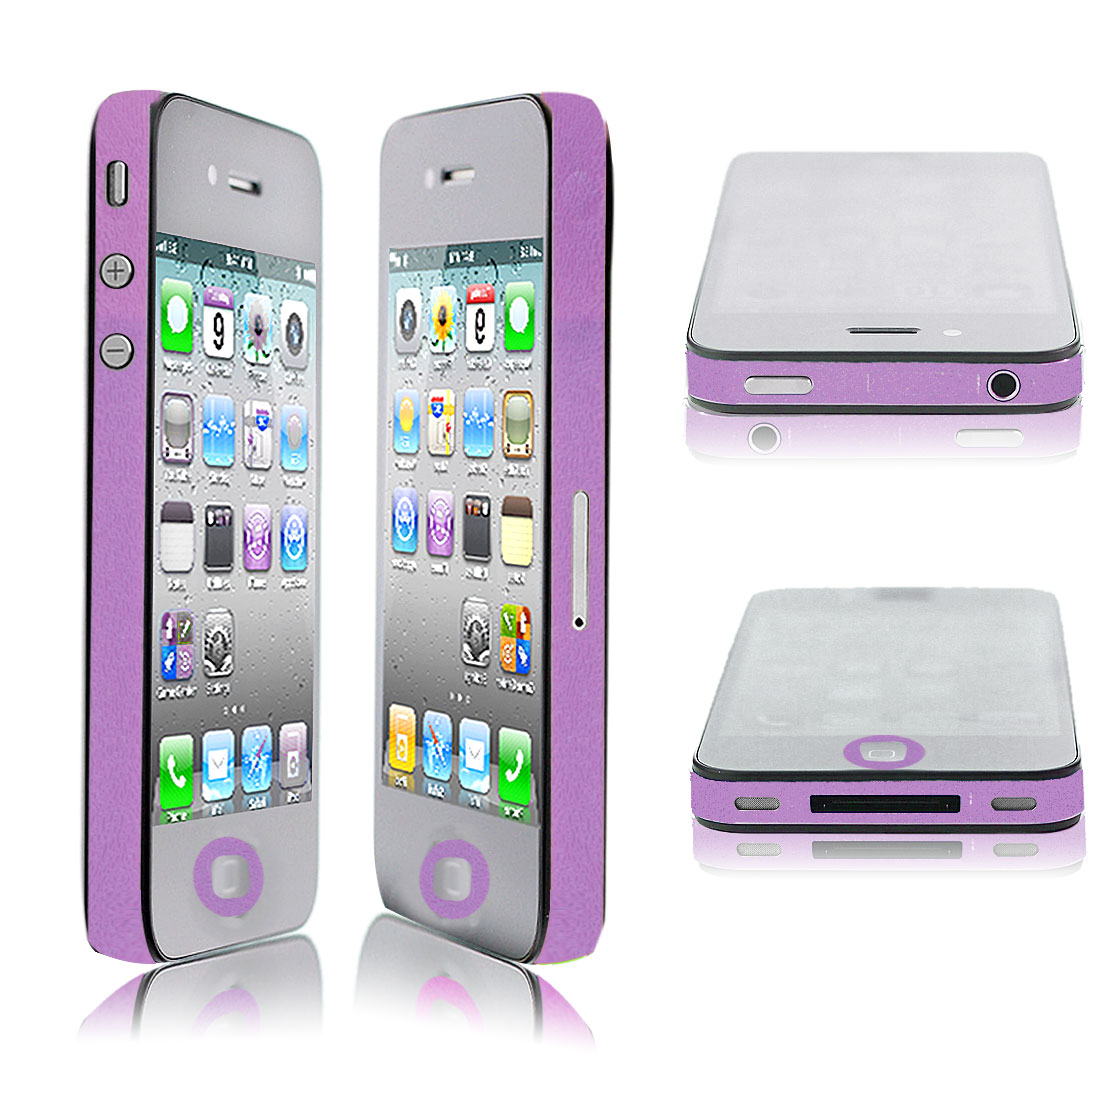 Light Purple Bumper Side Edge Skin Decal Sticker for Apple iPhone 4 4G 4GS 4S